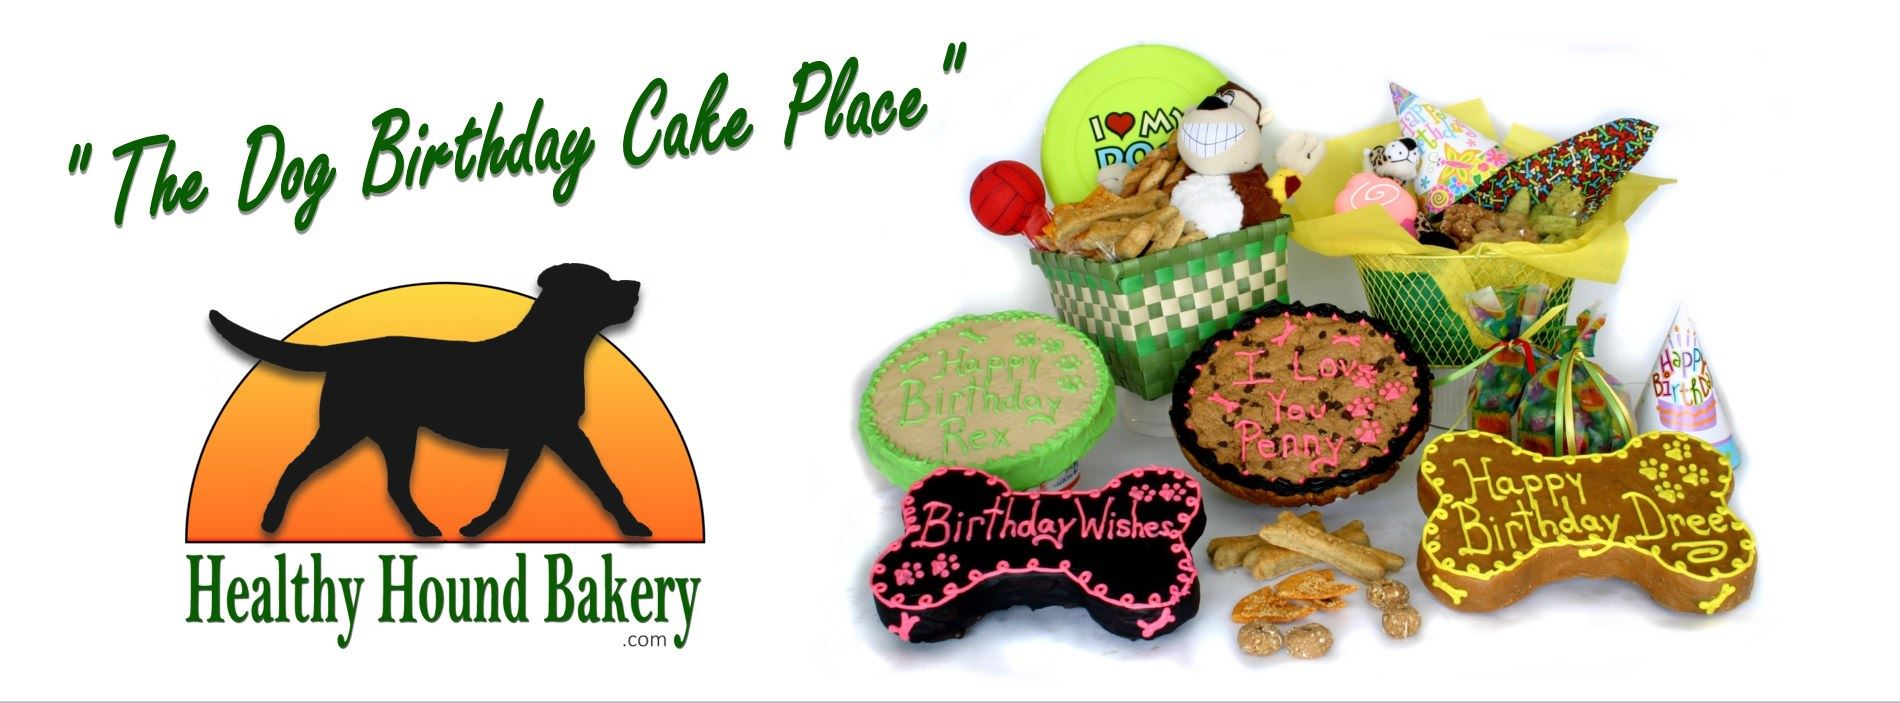 Easter Dog Treats And Baskets From Healthy Hound Bakery